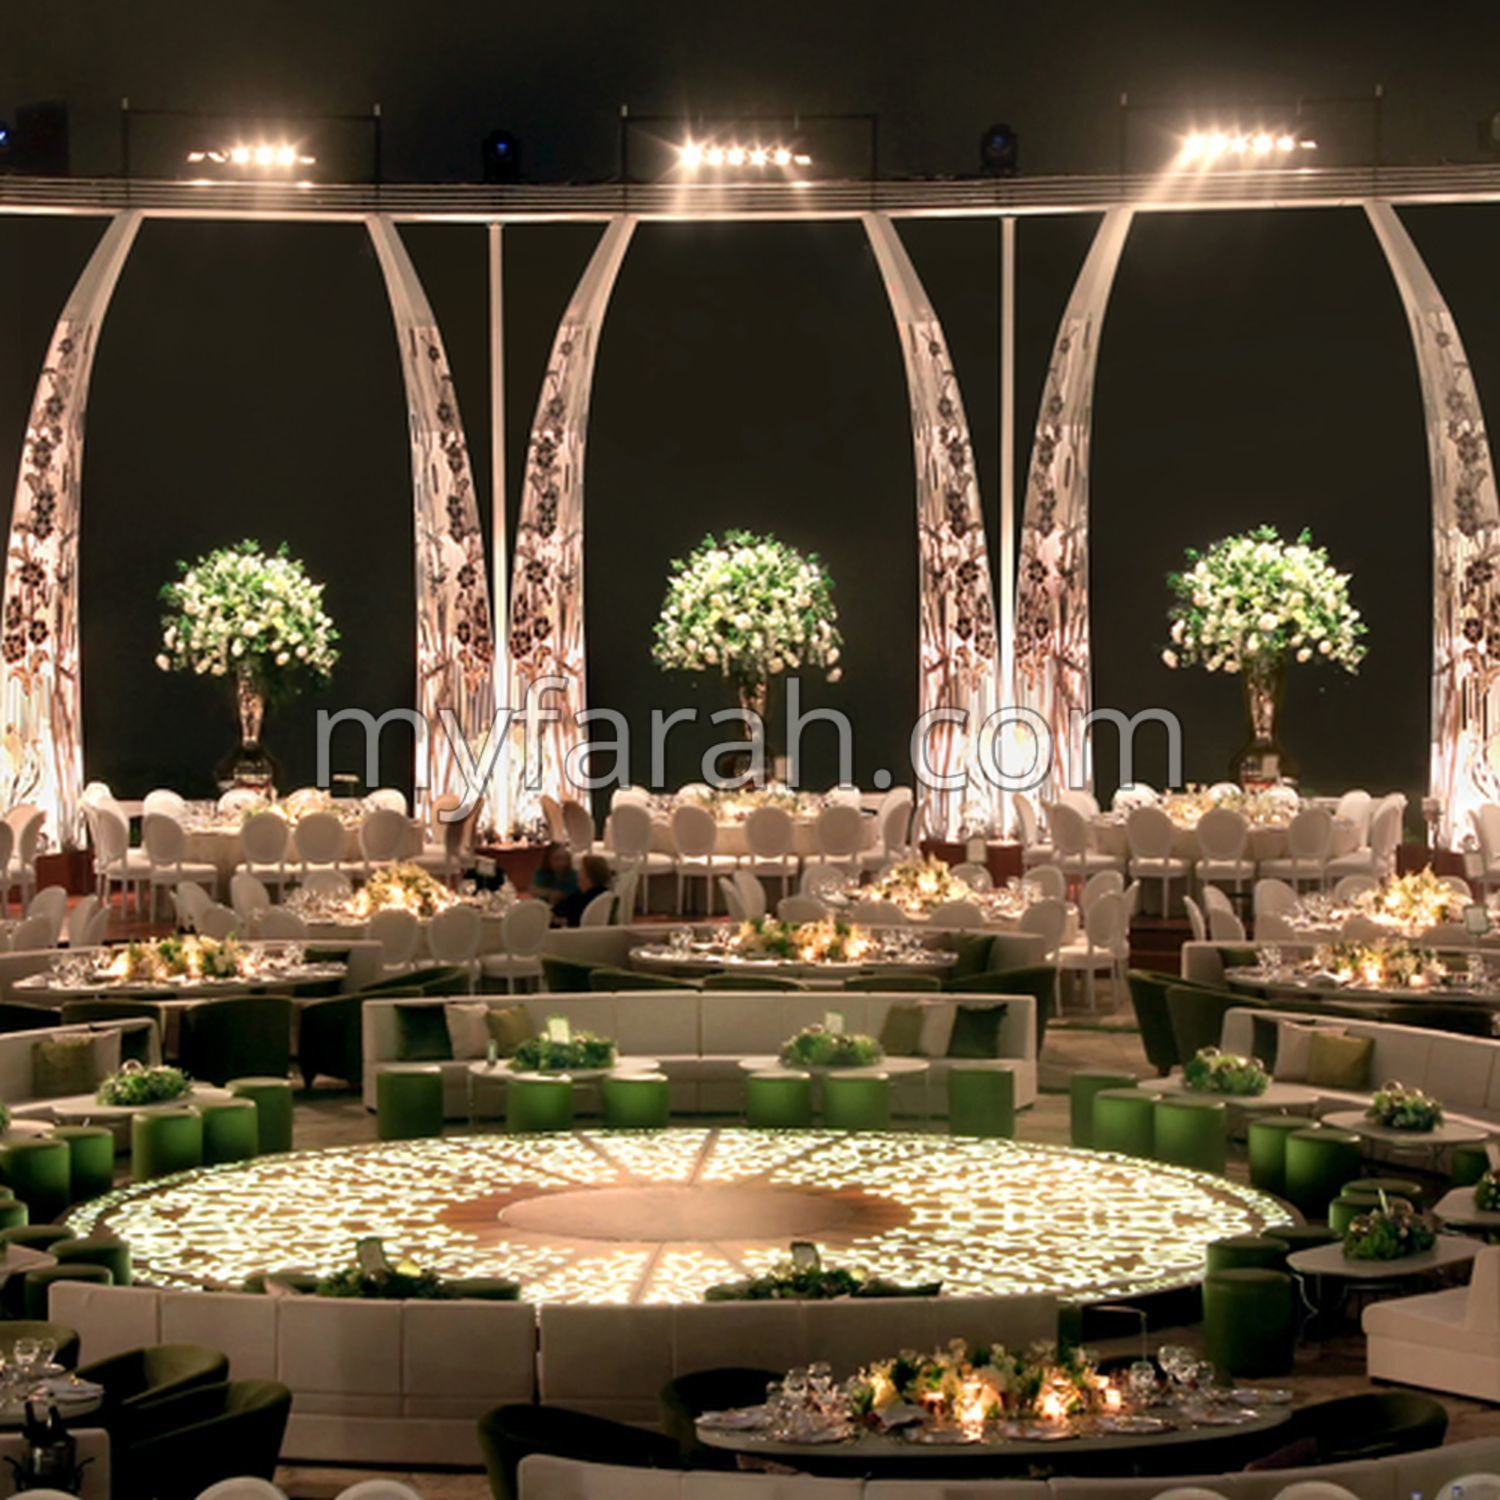 Wedding Design Ideas wedding design ideas home pleasing wedding designs ideas 1000 Wedding Design Ideas By Designlab Events Dubai Httpwwwmyfarah